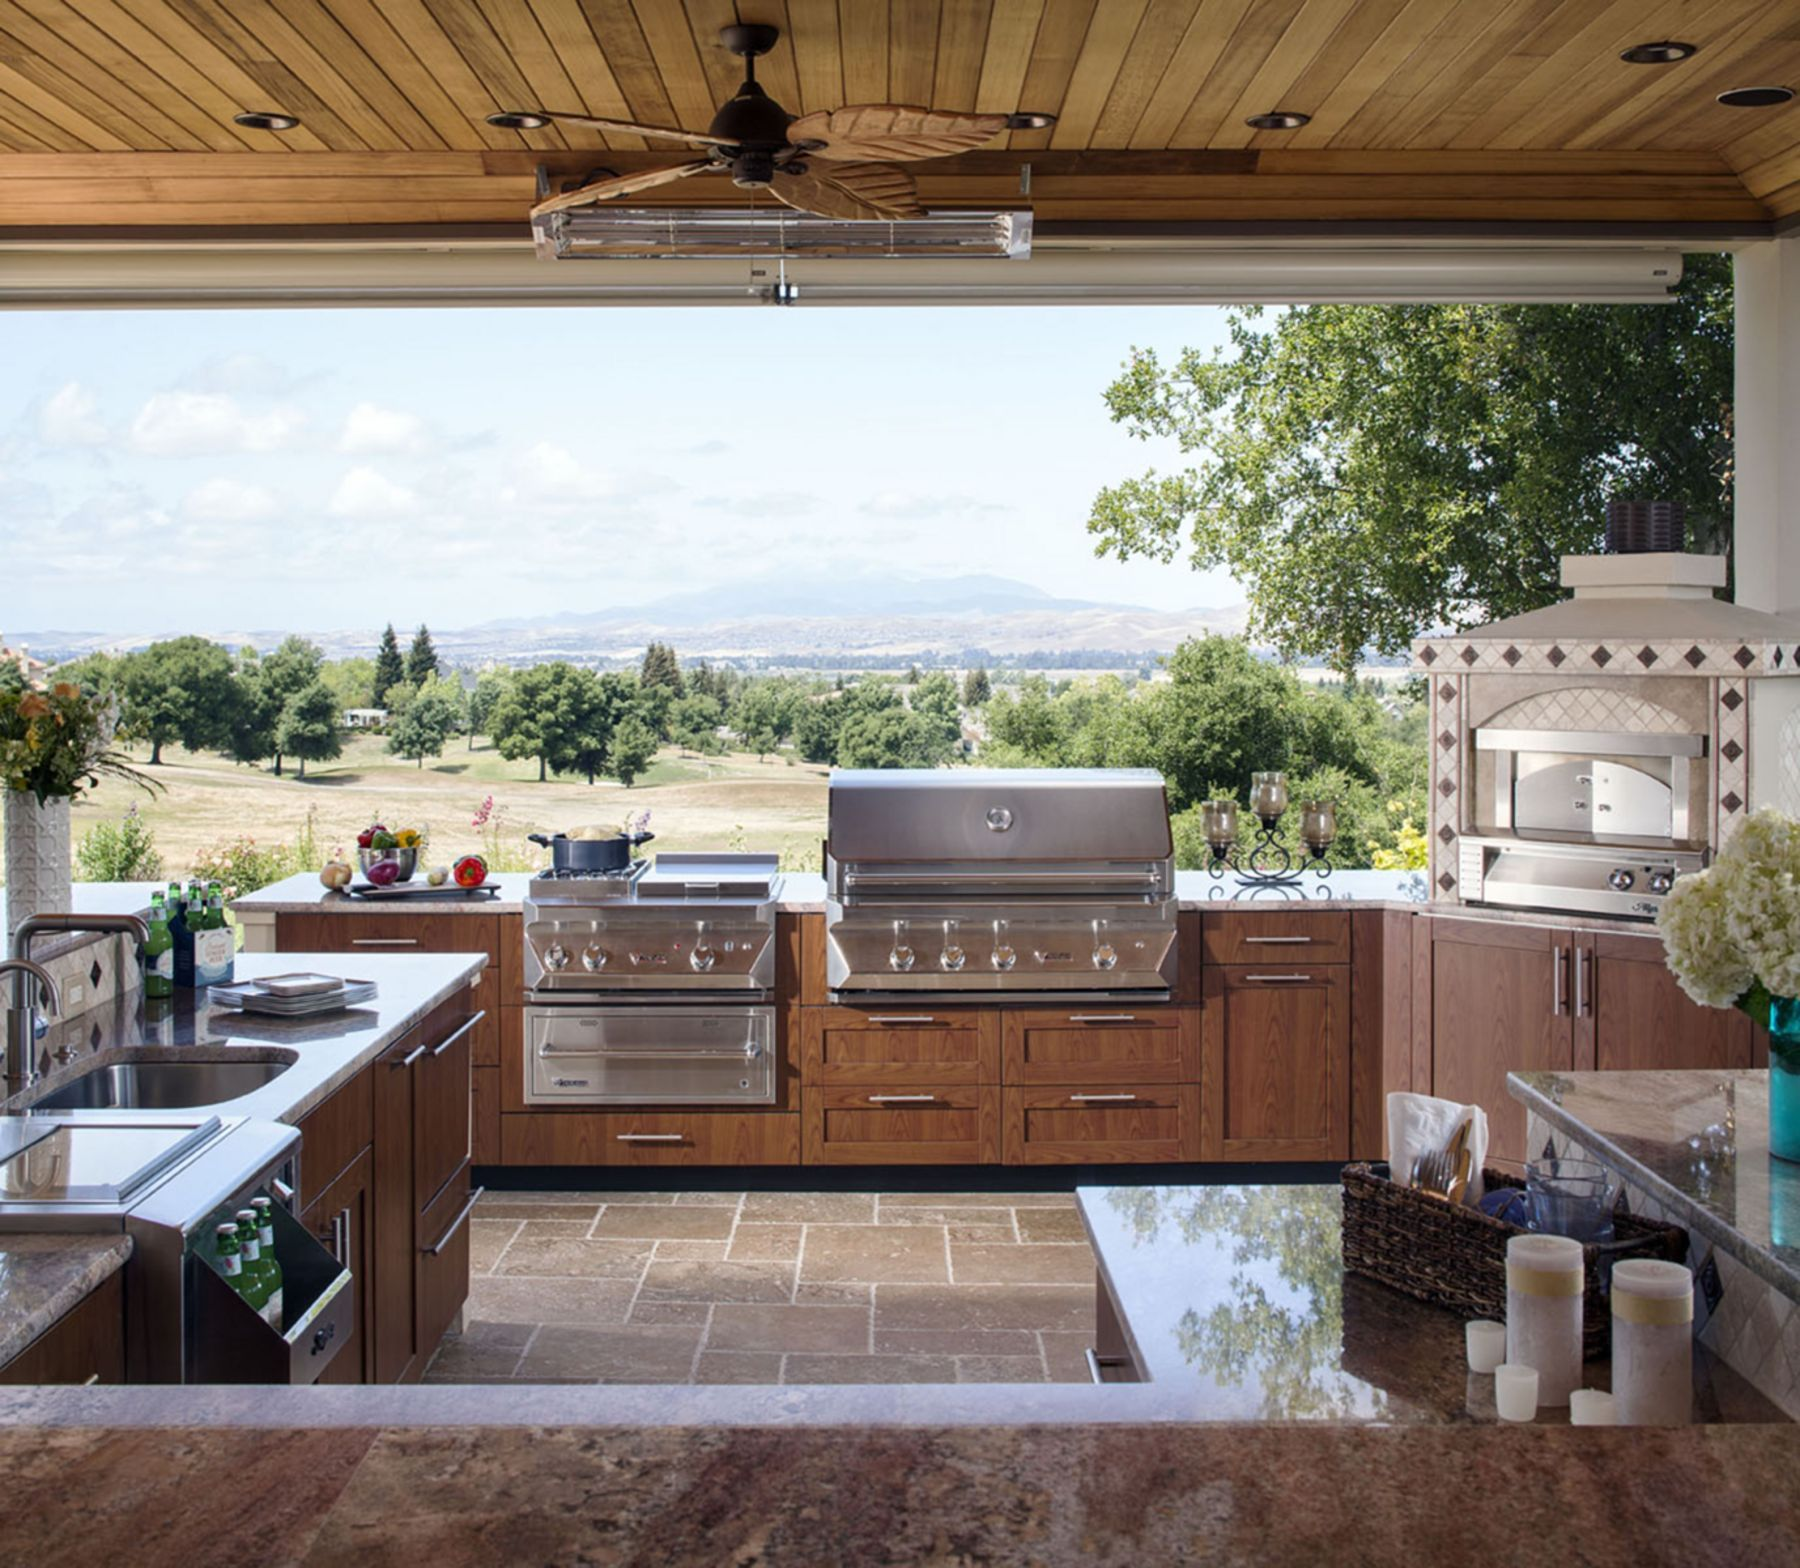 Design Your Own Outdoor Kitchen Using Danver Stainless Cabinets Add A Kamado Joe Fridge And You Re Set For Some Serious Outdoor Salon Maison Maison Salon